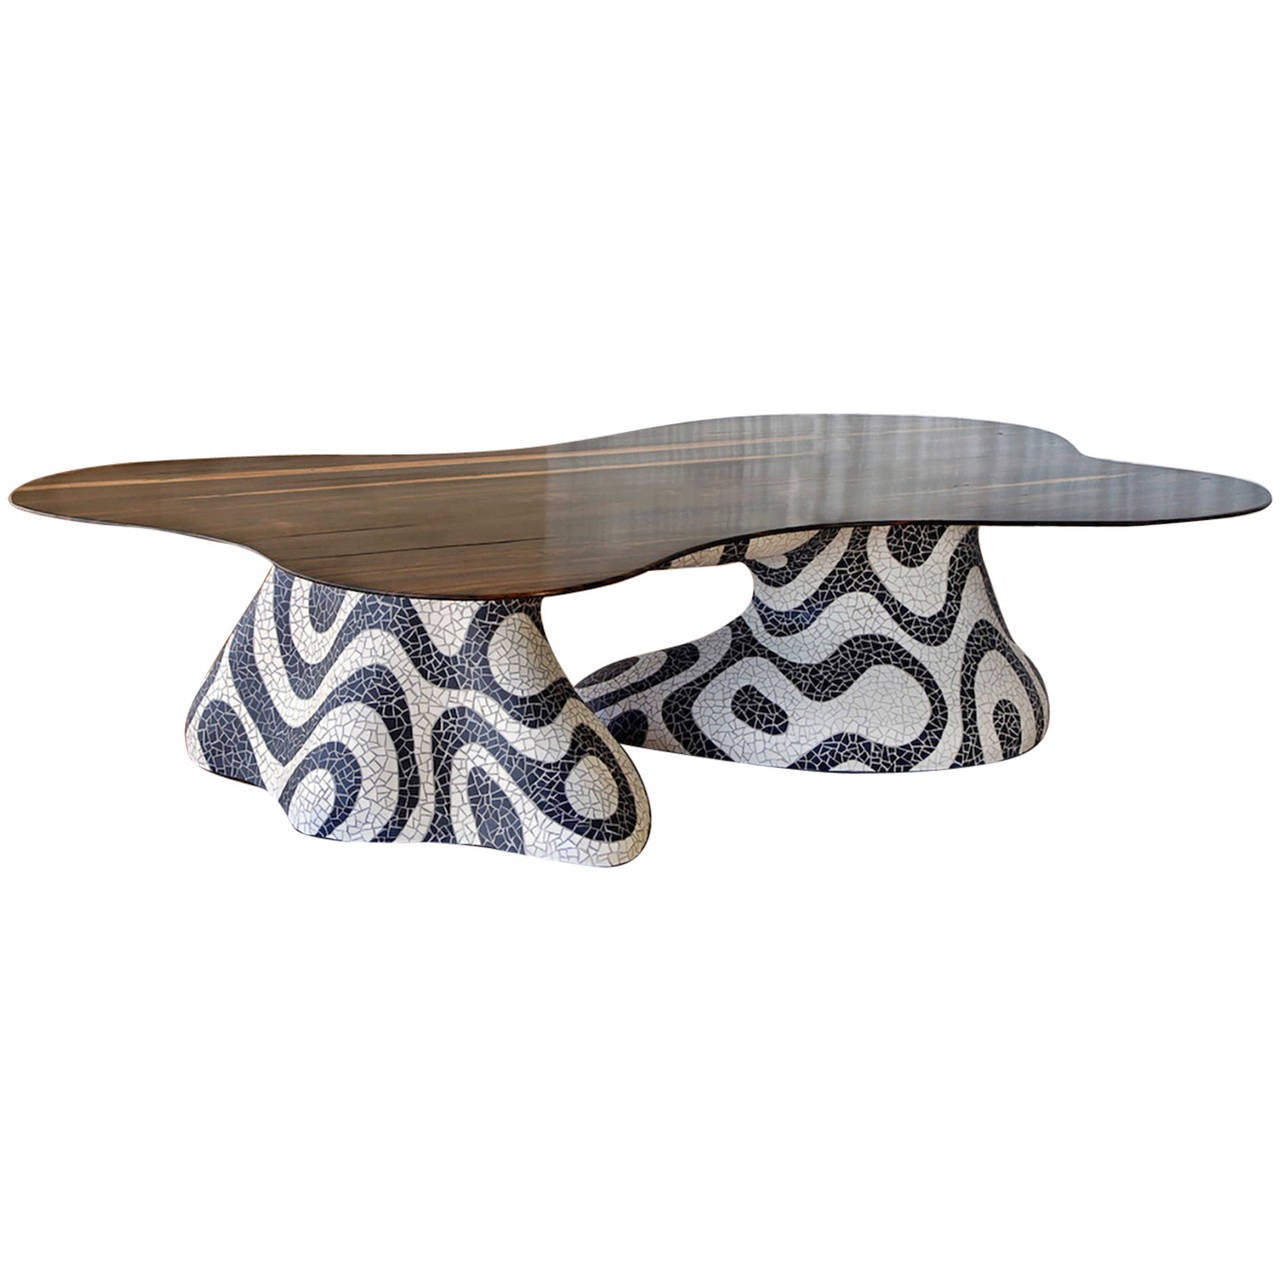 Organic Dining Table with Base in the Manner of Roberto Burle Marx